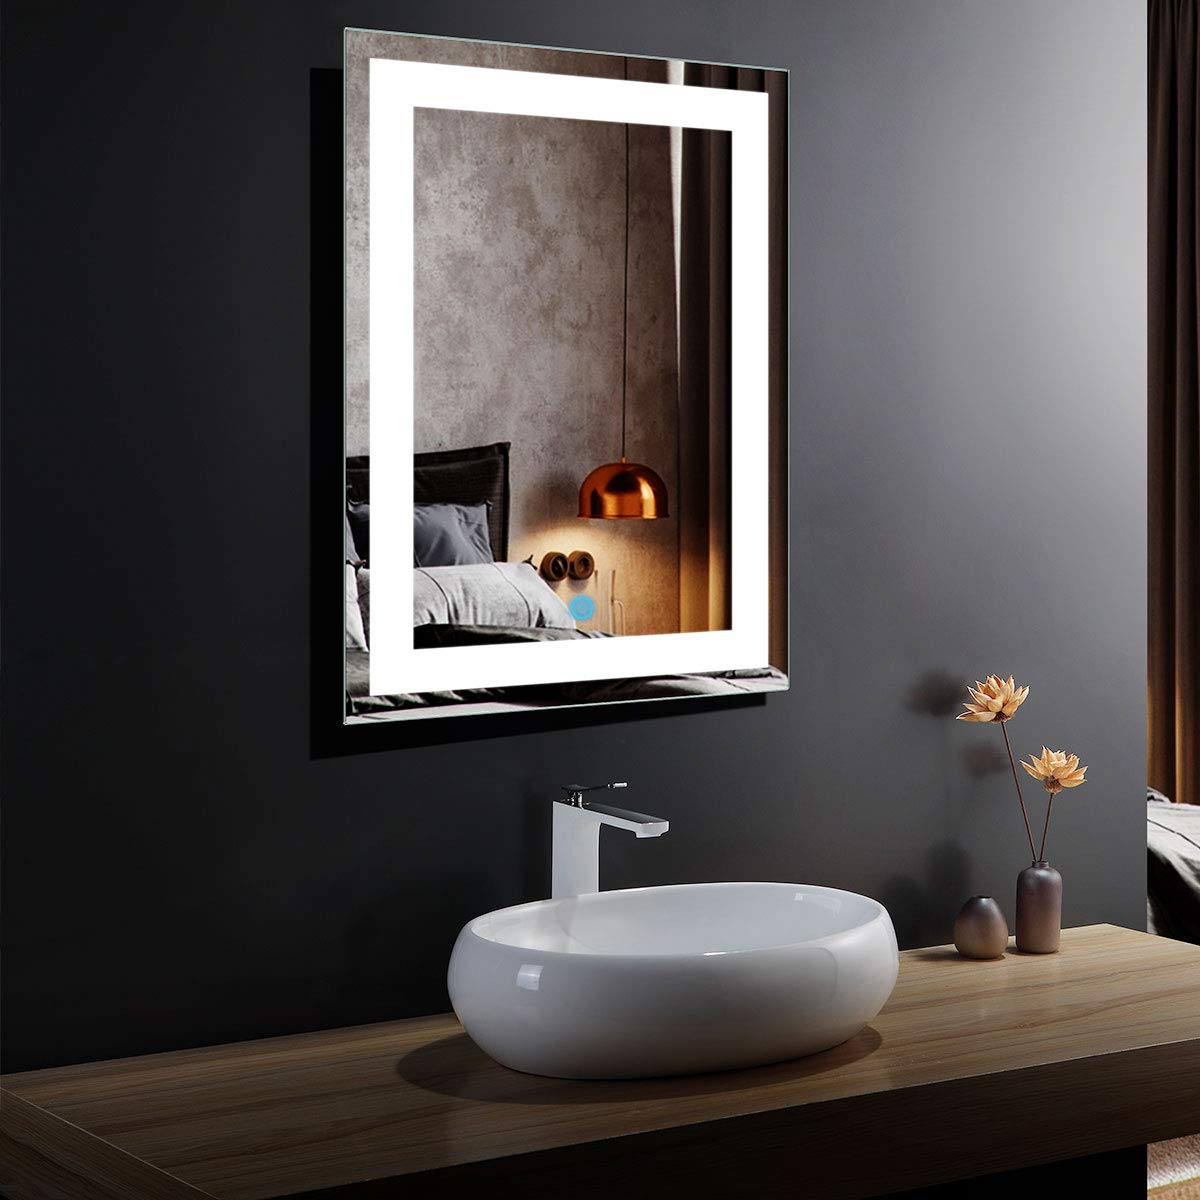 """Dp Home 24"""" Led Lighted Illuminated Bathroom Vanity Wall Mirror With Touch Sensor, Vertical Rectangle White Mirrors 24 X 32 In E Ck010 Regarding Well Known Vanity Wall Mirrors (View 14 of 20)"""